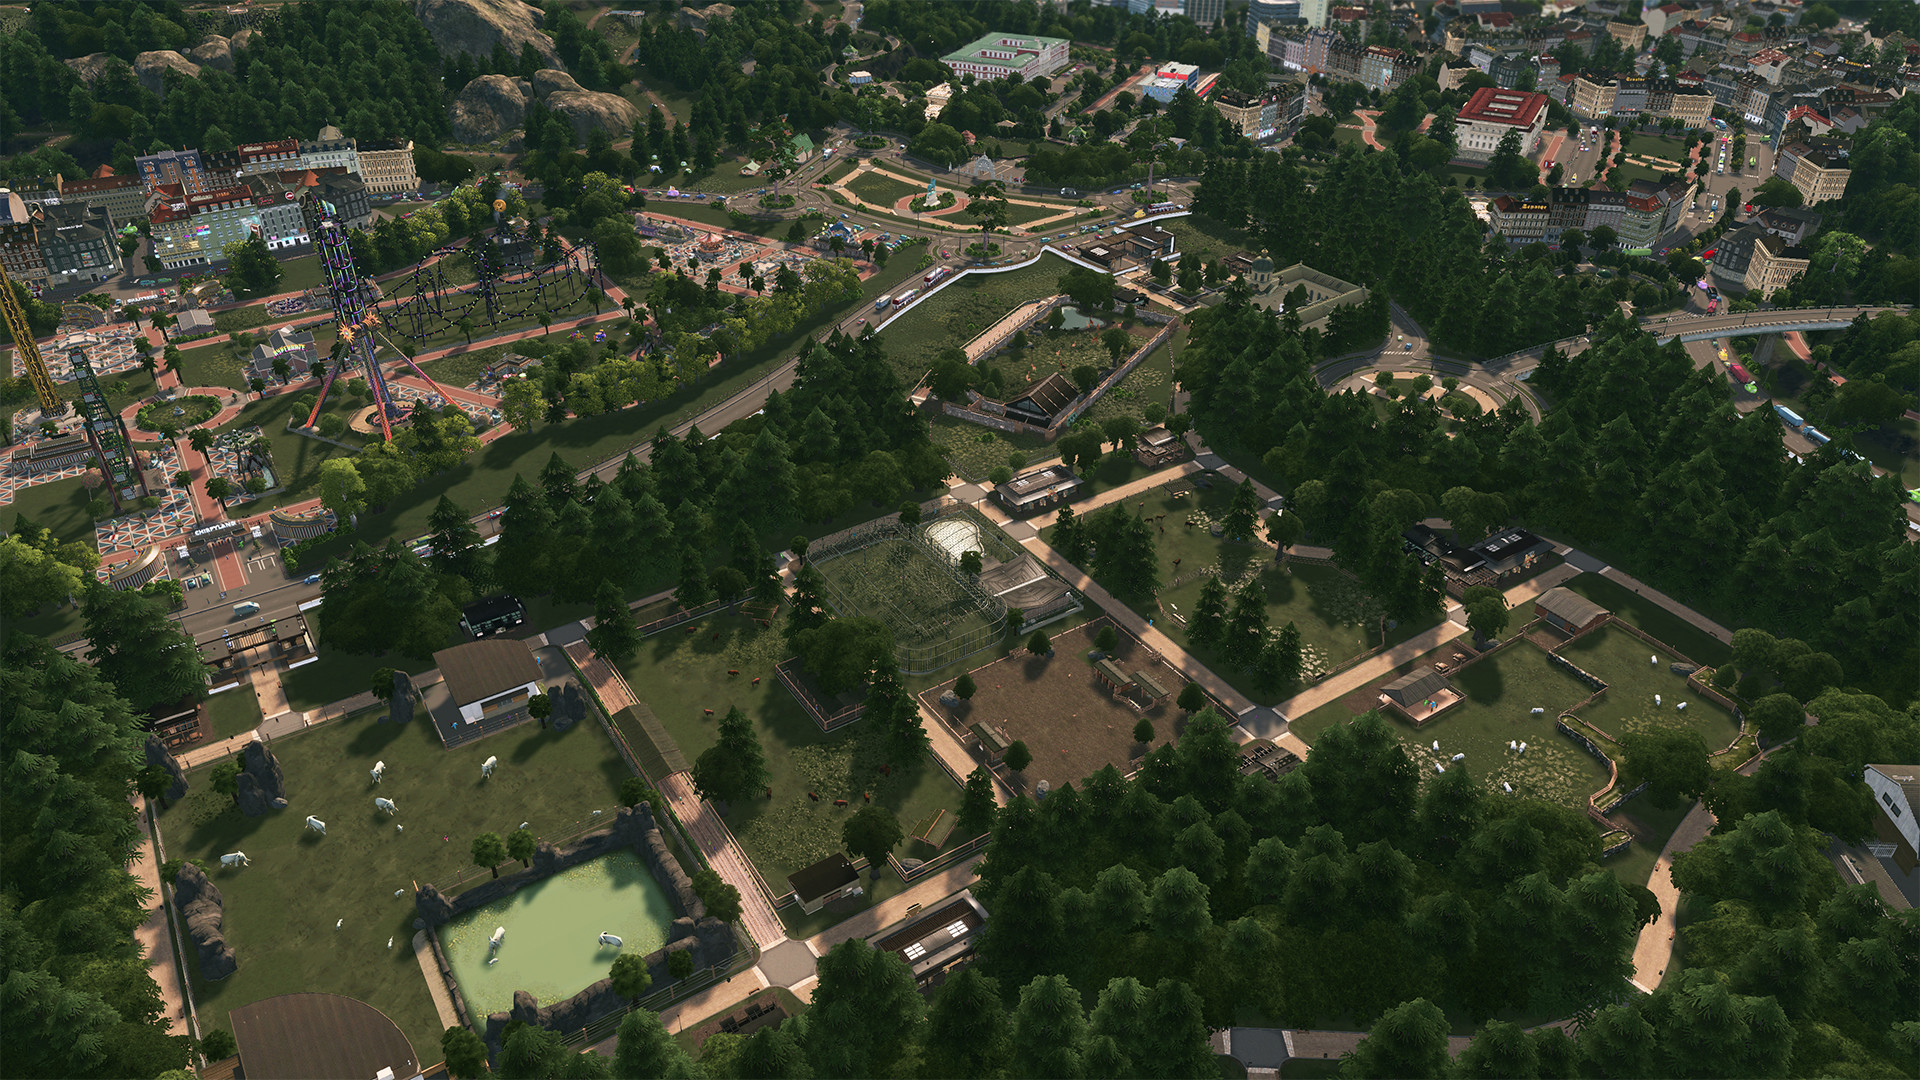 Cities: Skylines Newest Expansion Allows You To Build Your Own Theme Park